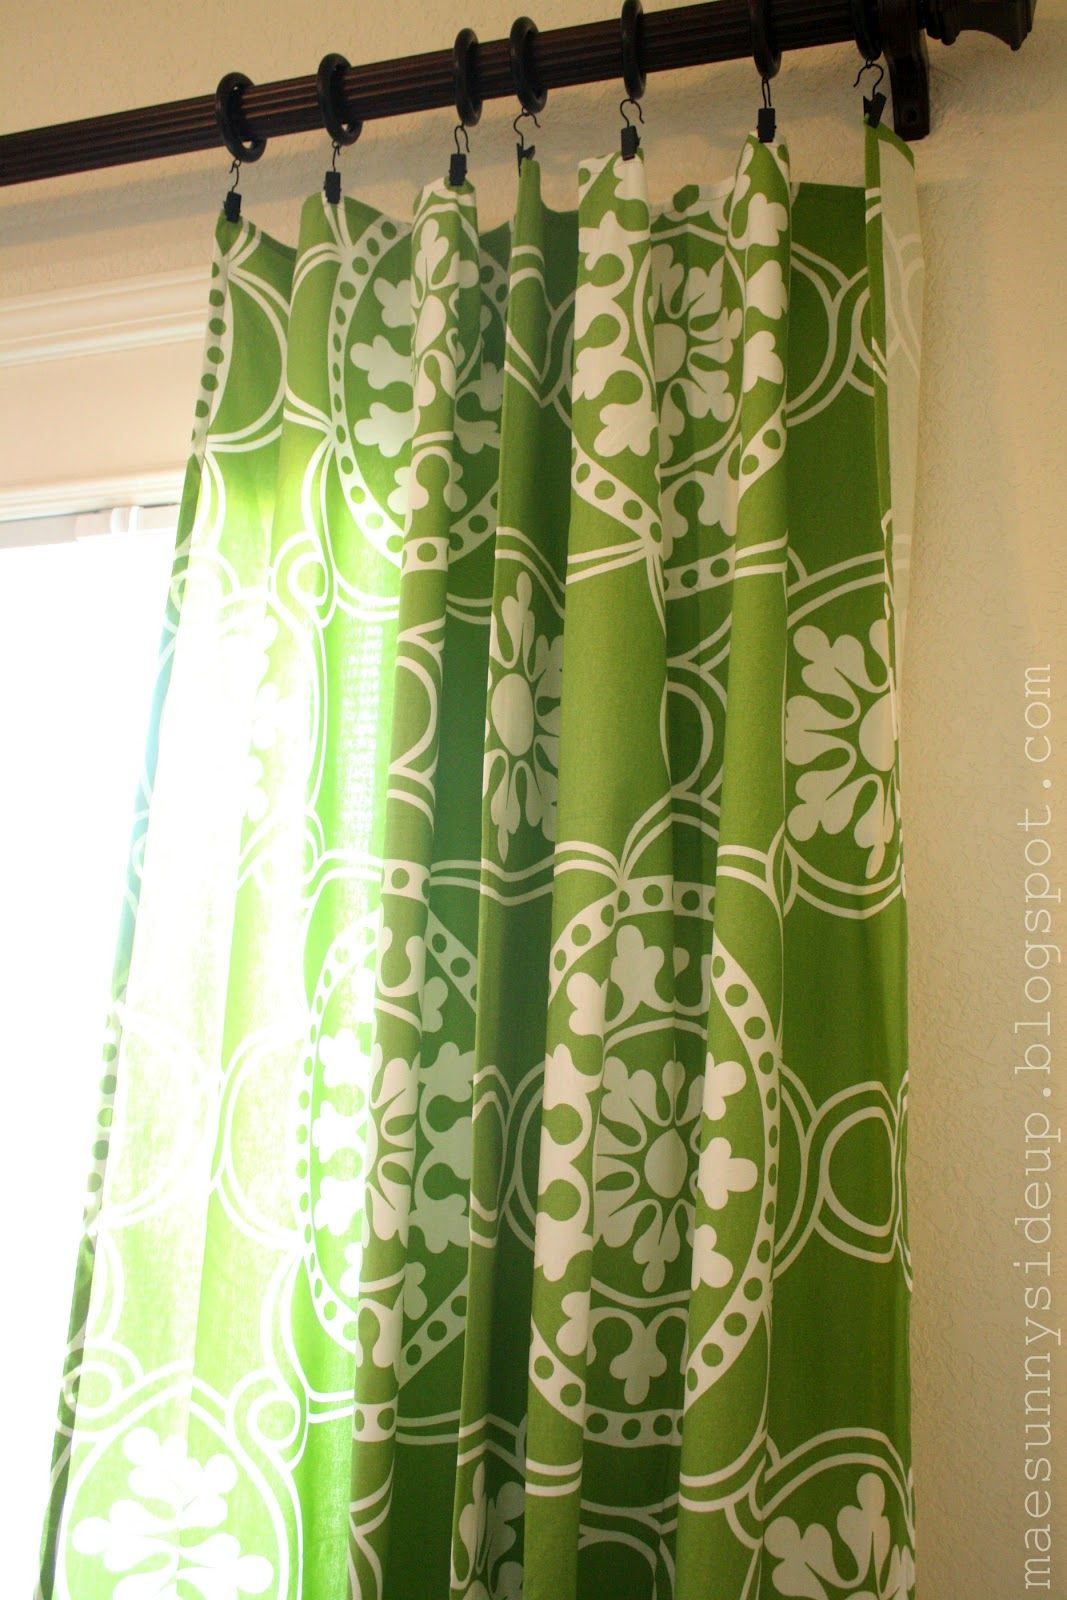 X tablecloths as curtain panels for sliding glass doors So